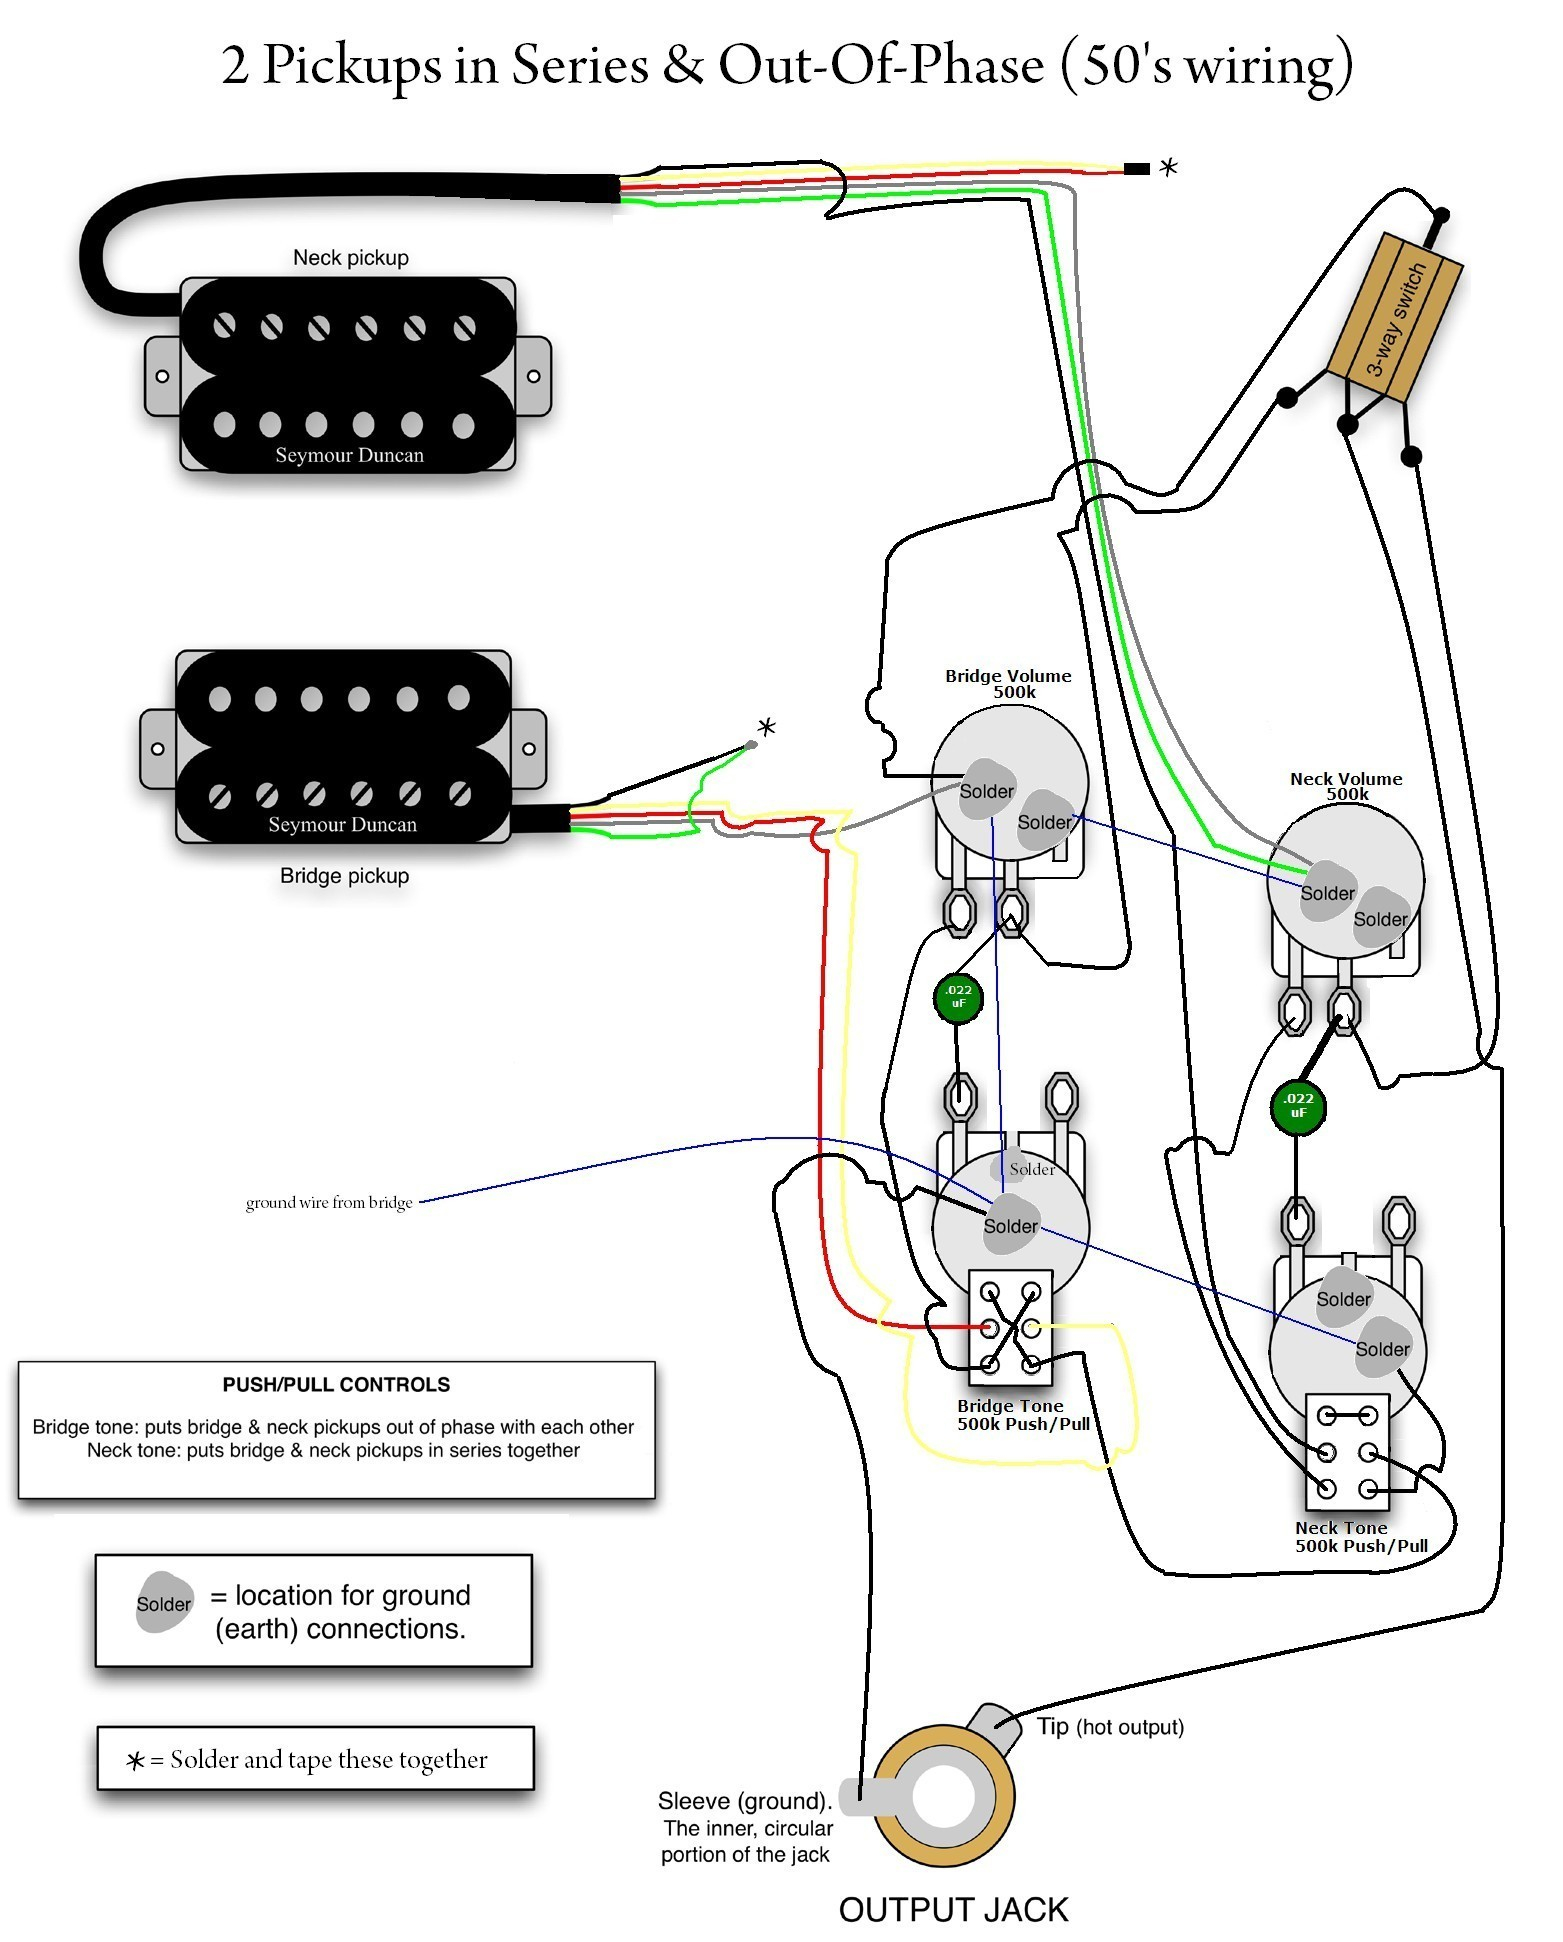 vintage les paul wiring diagram gallery rh wholefoodsonabudget com gibson les  paul wiring diagram les paul wiring diagram coil split